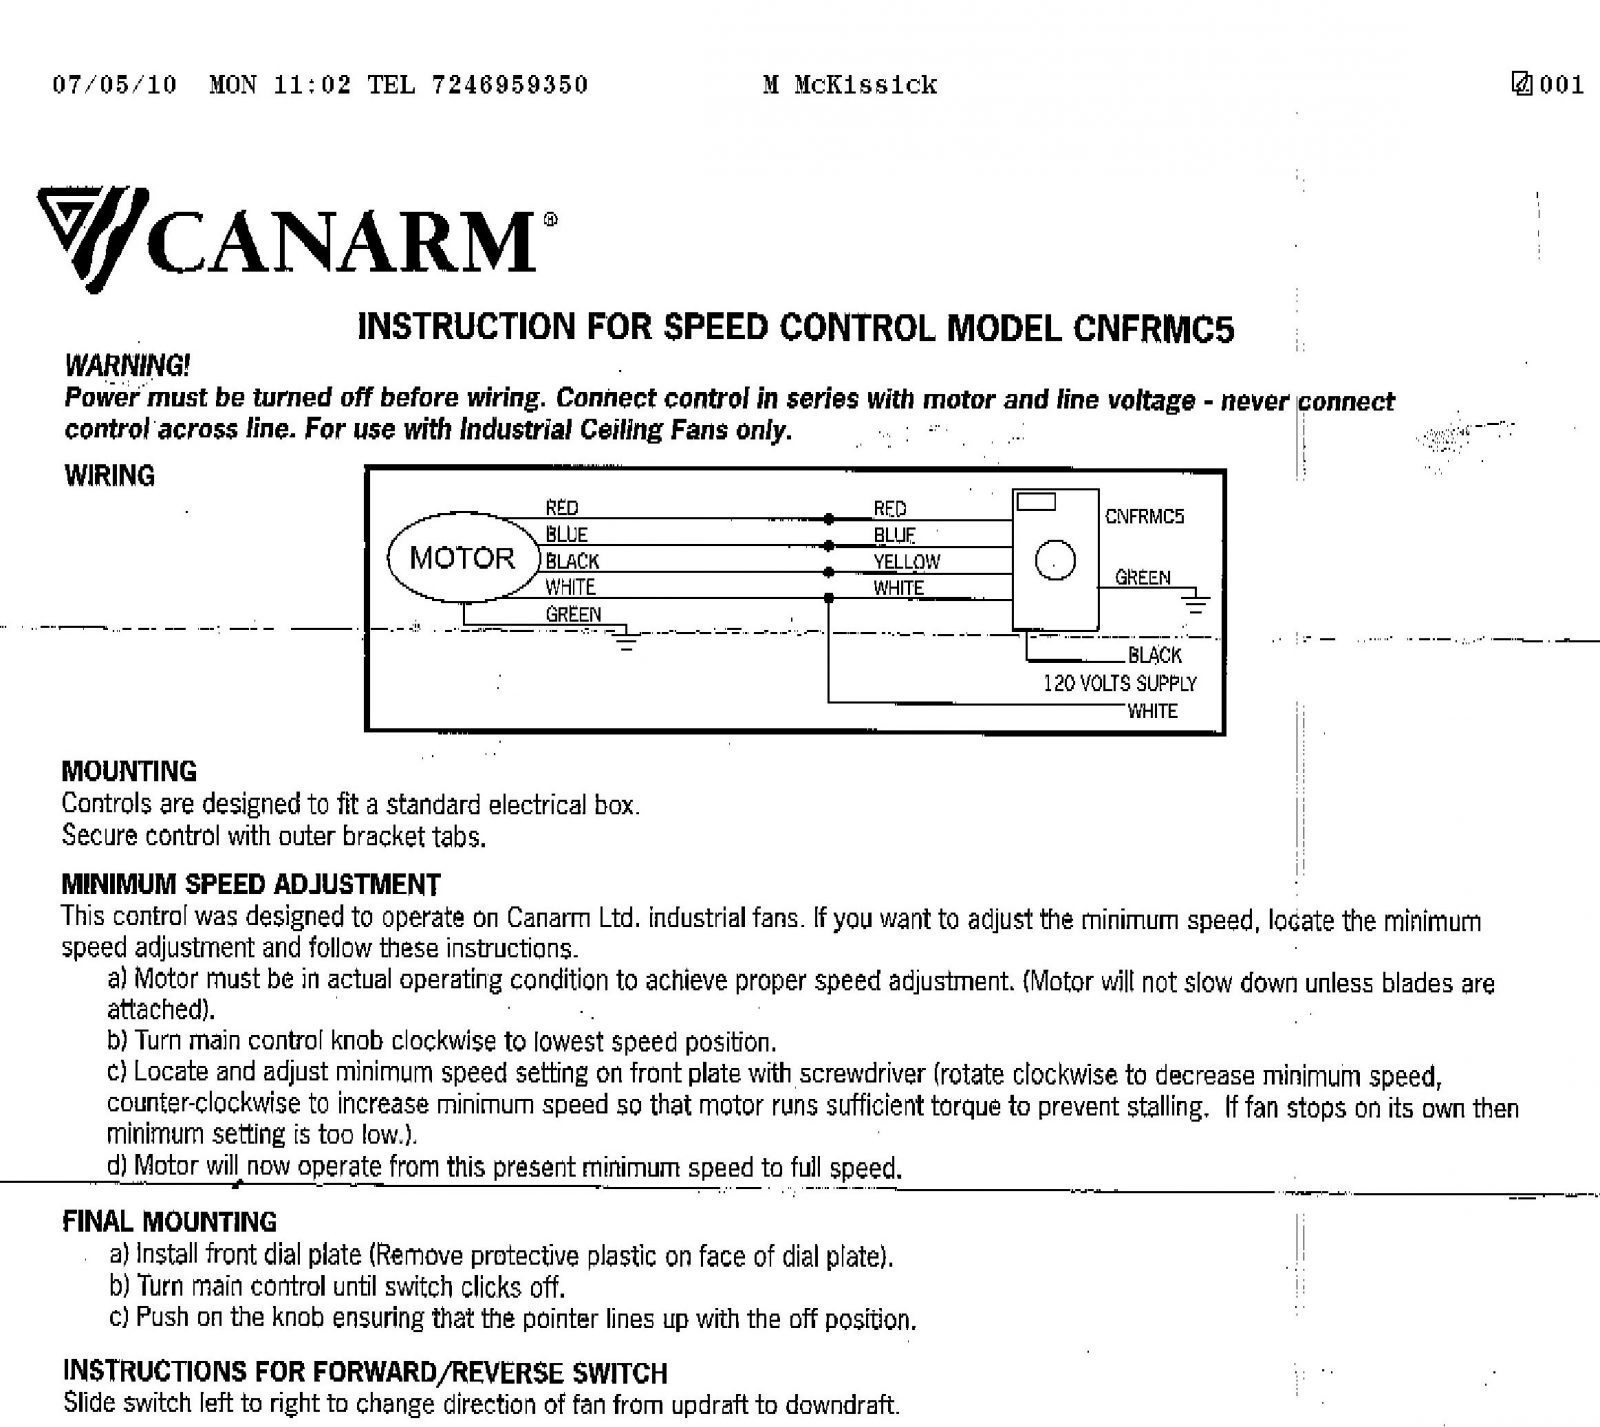 Fulham Wh2 120 C Wiring Diagram Gallery Sample Ballast Canarm Industrial Ceiling Fans For Exhaust Fan Fresh